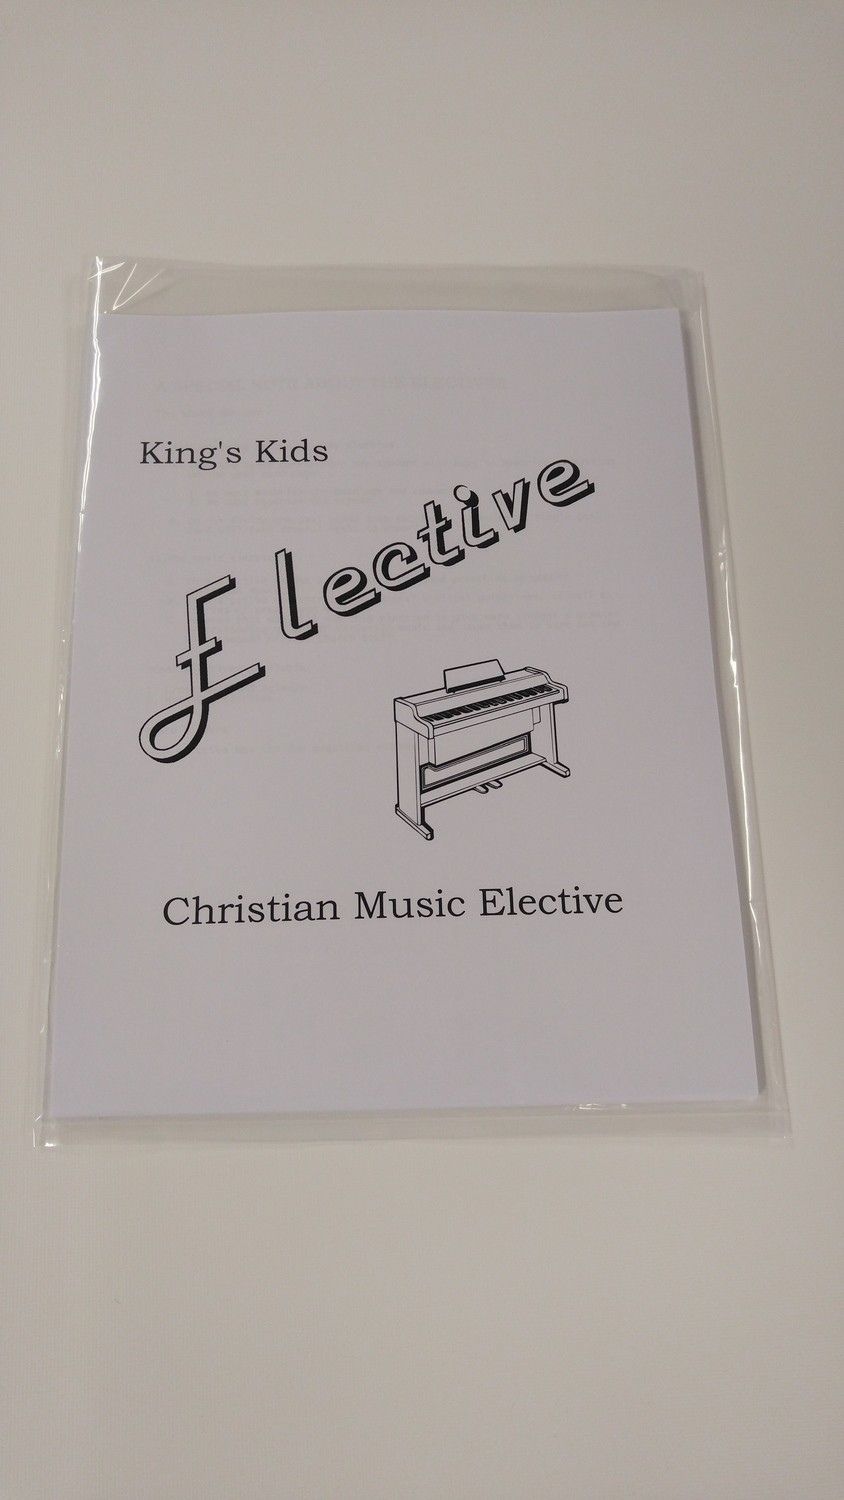 Student Elective - Christian Music